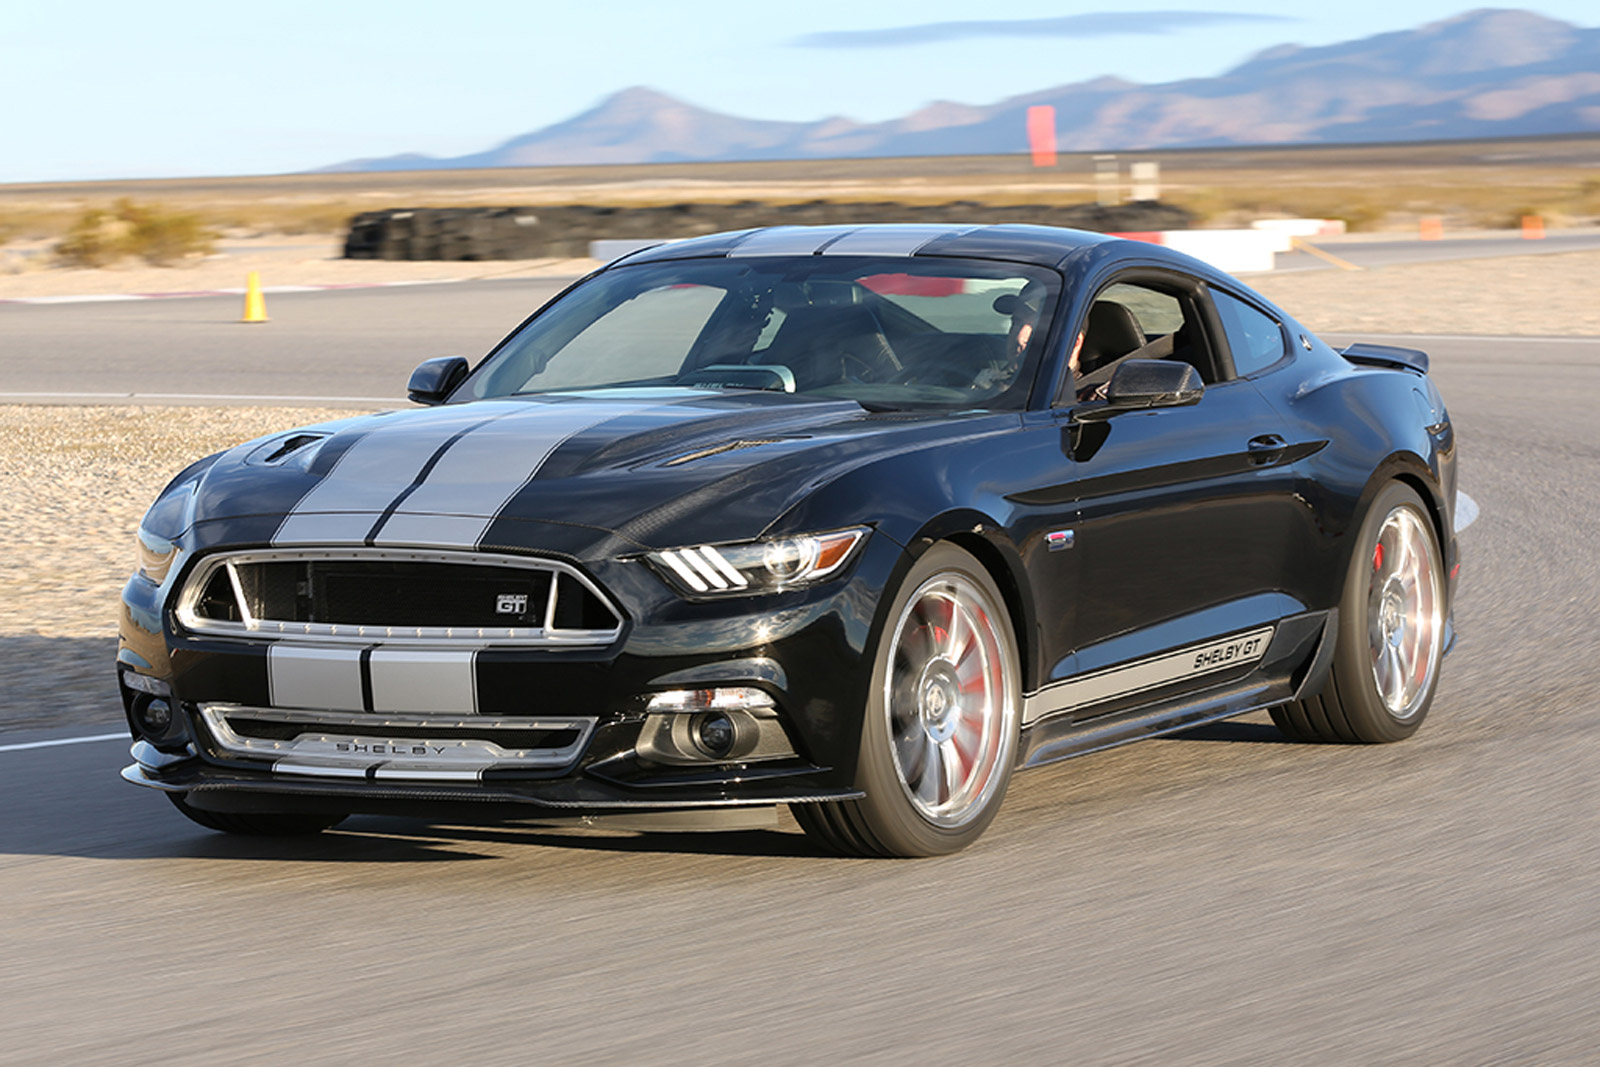 2015 Ford Shelby Gt Debuts With 625 Horsepower Video